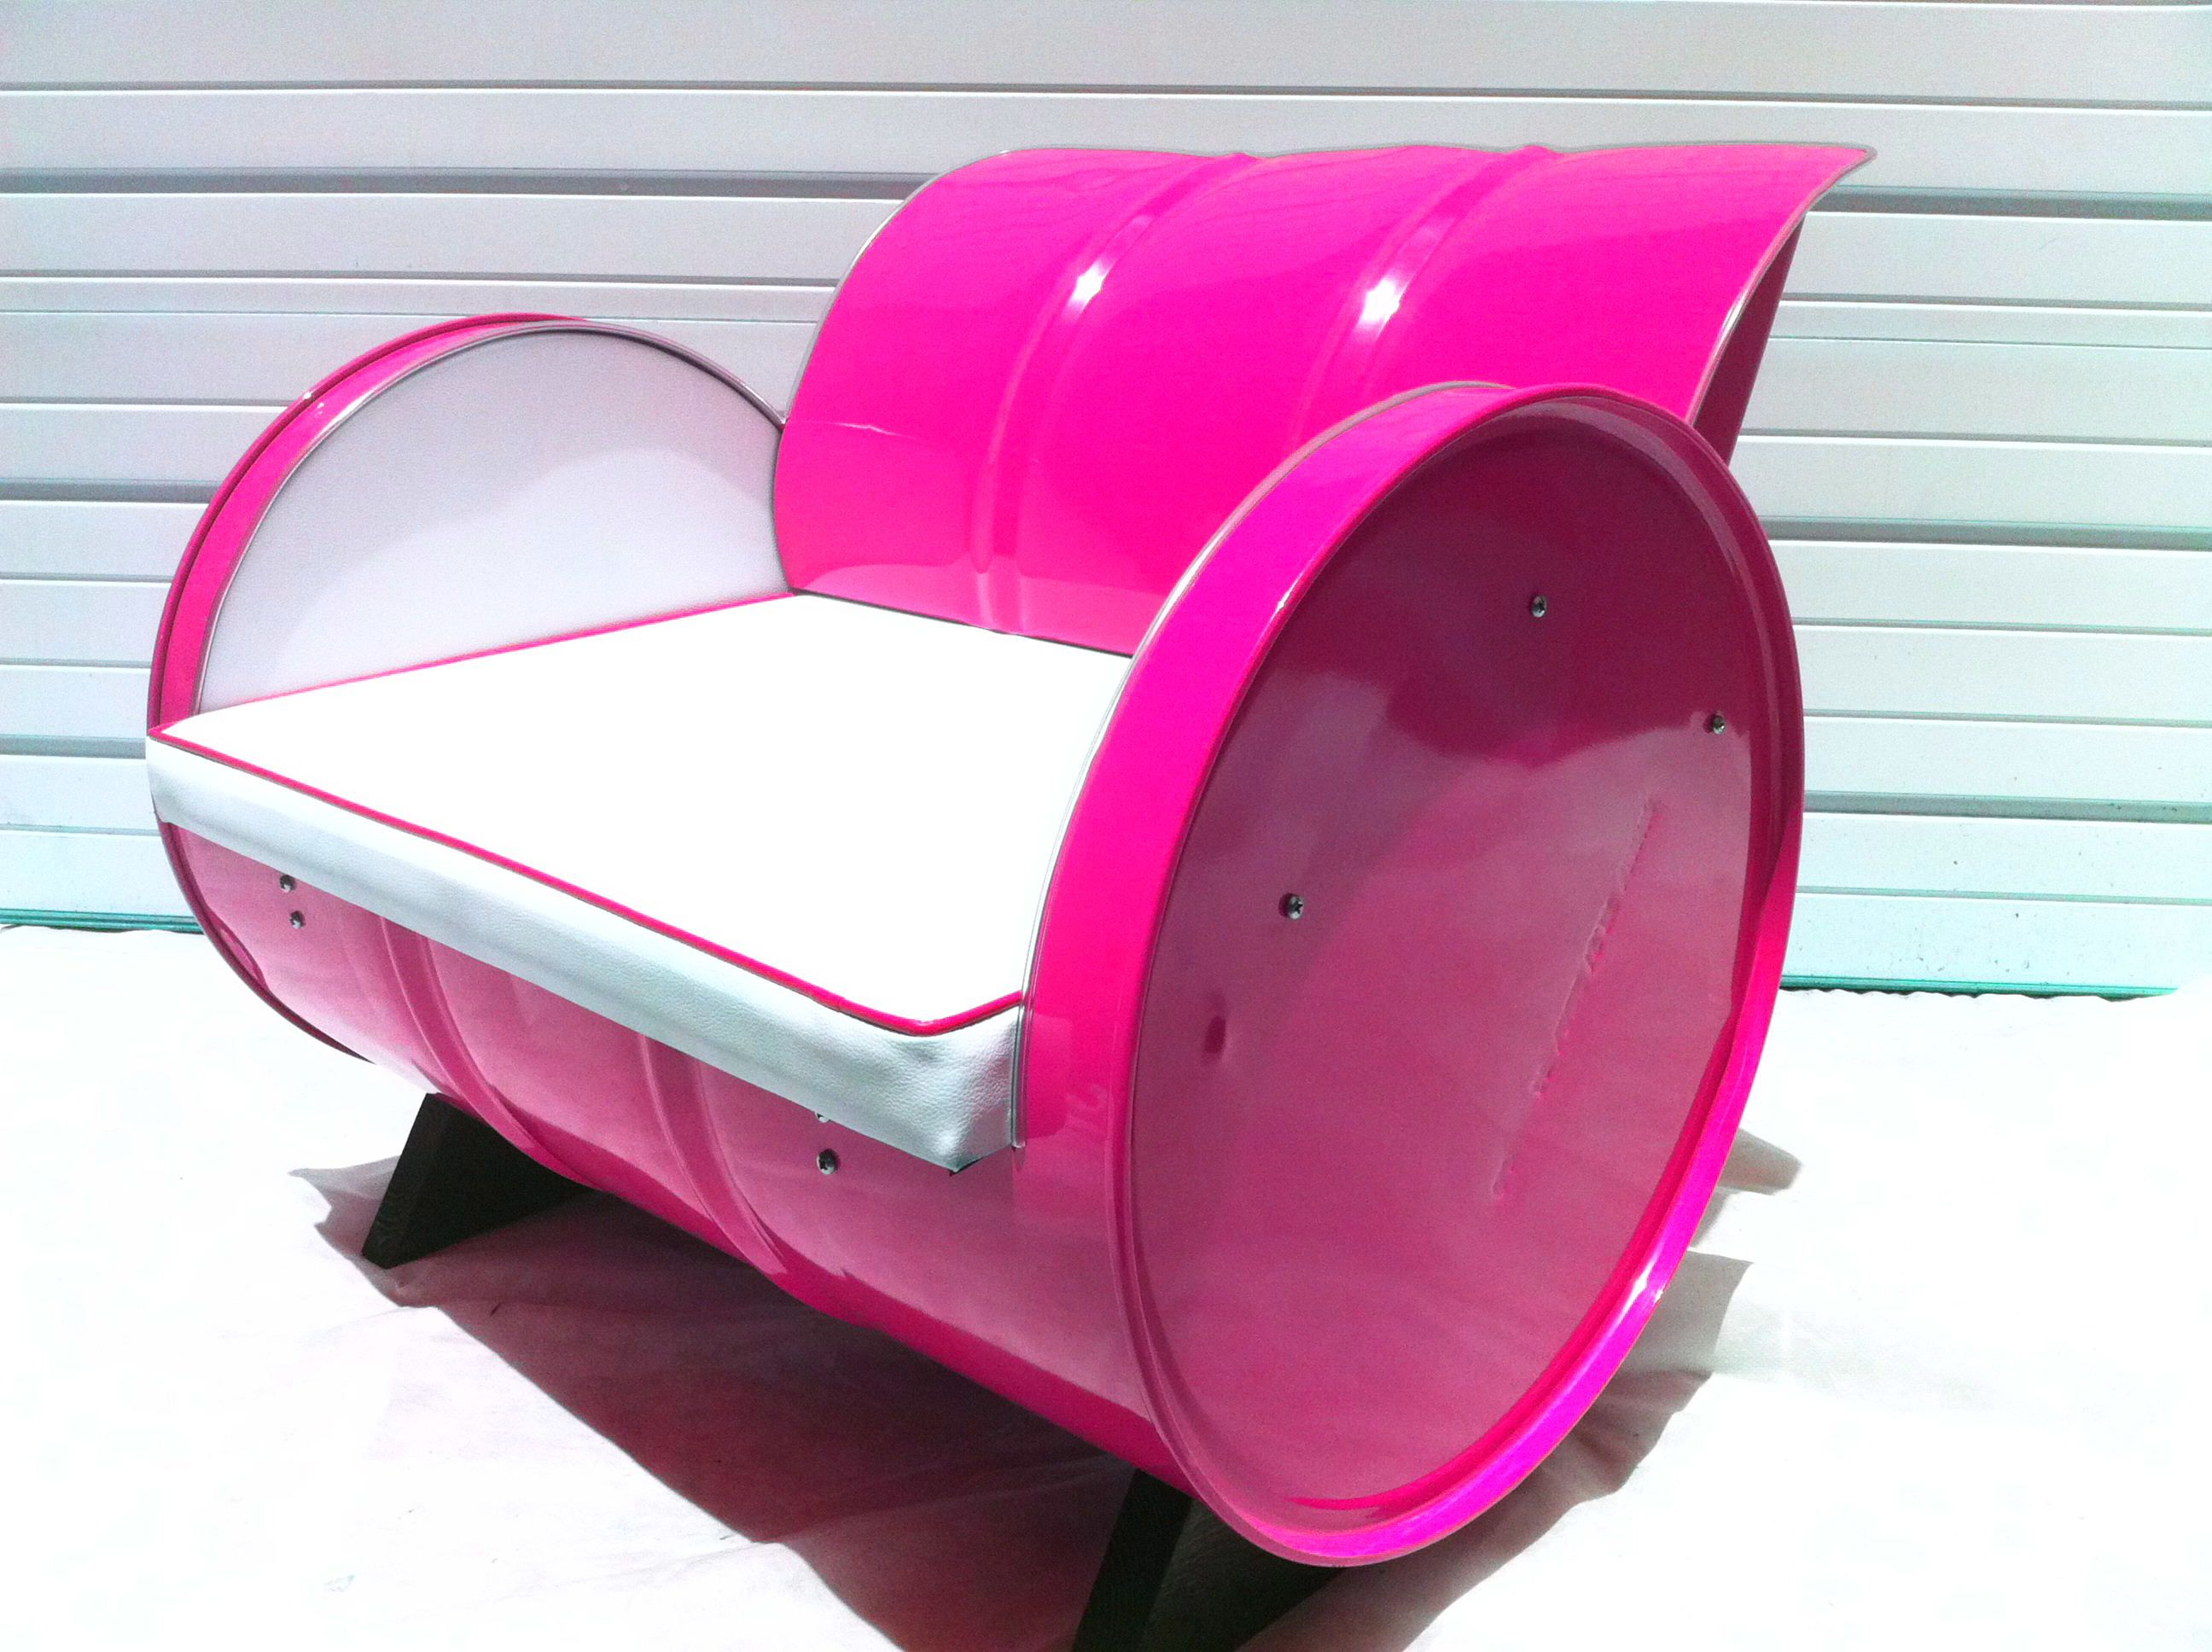 Drum Chair Recycled 55 Gallon Drum Arm Chair Blinding Magenta Powder